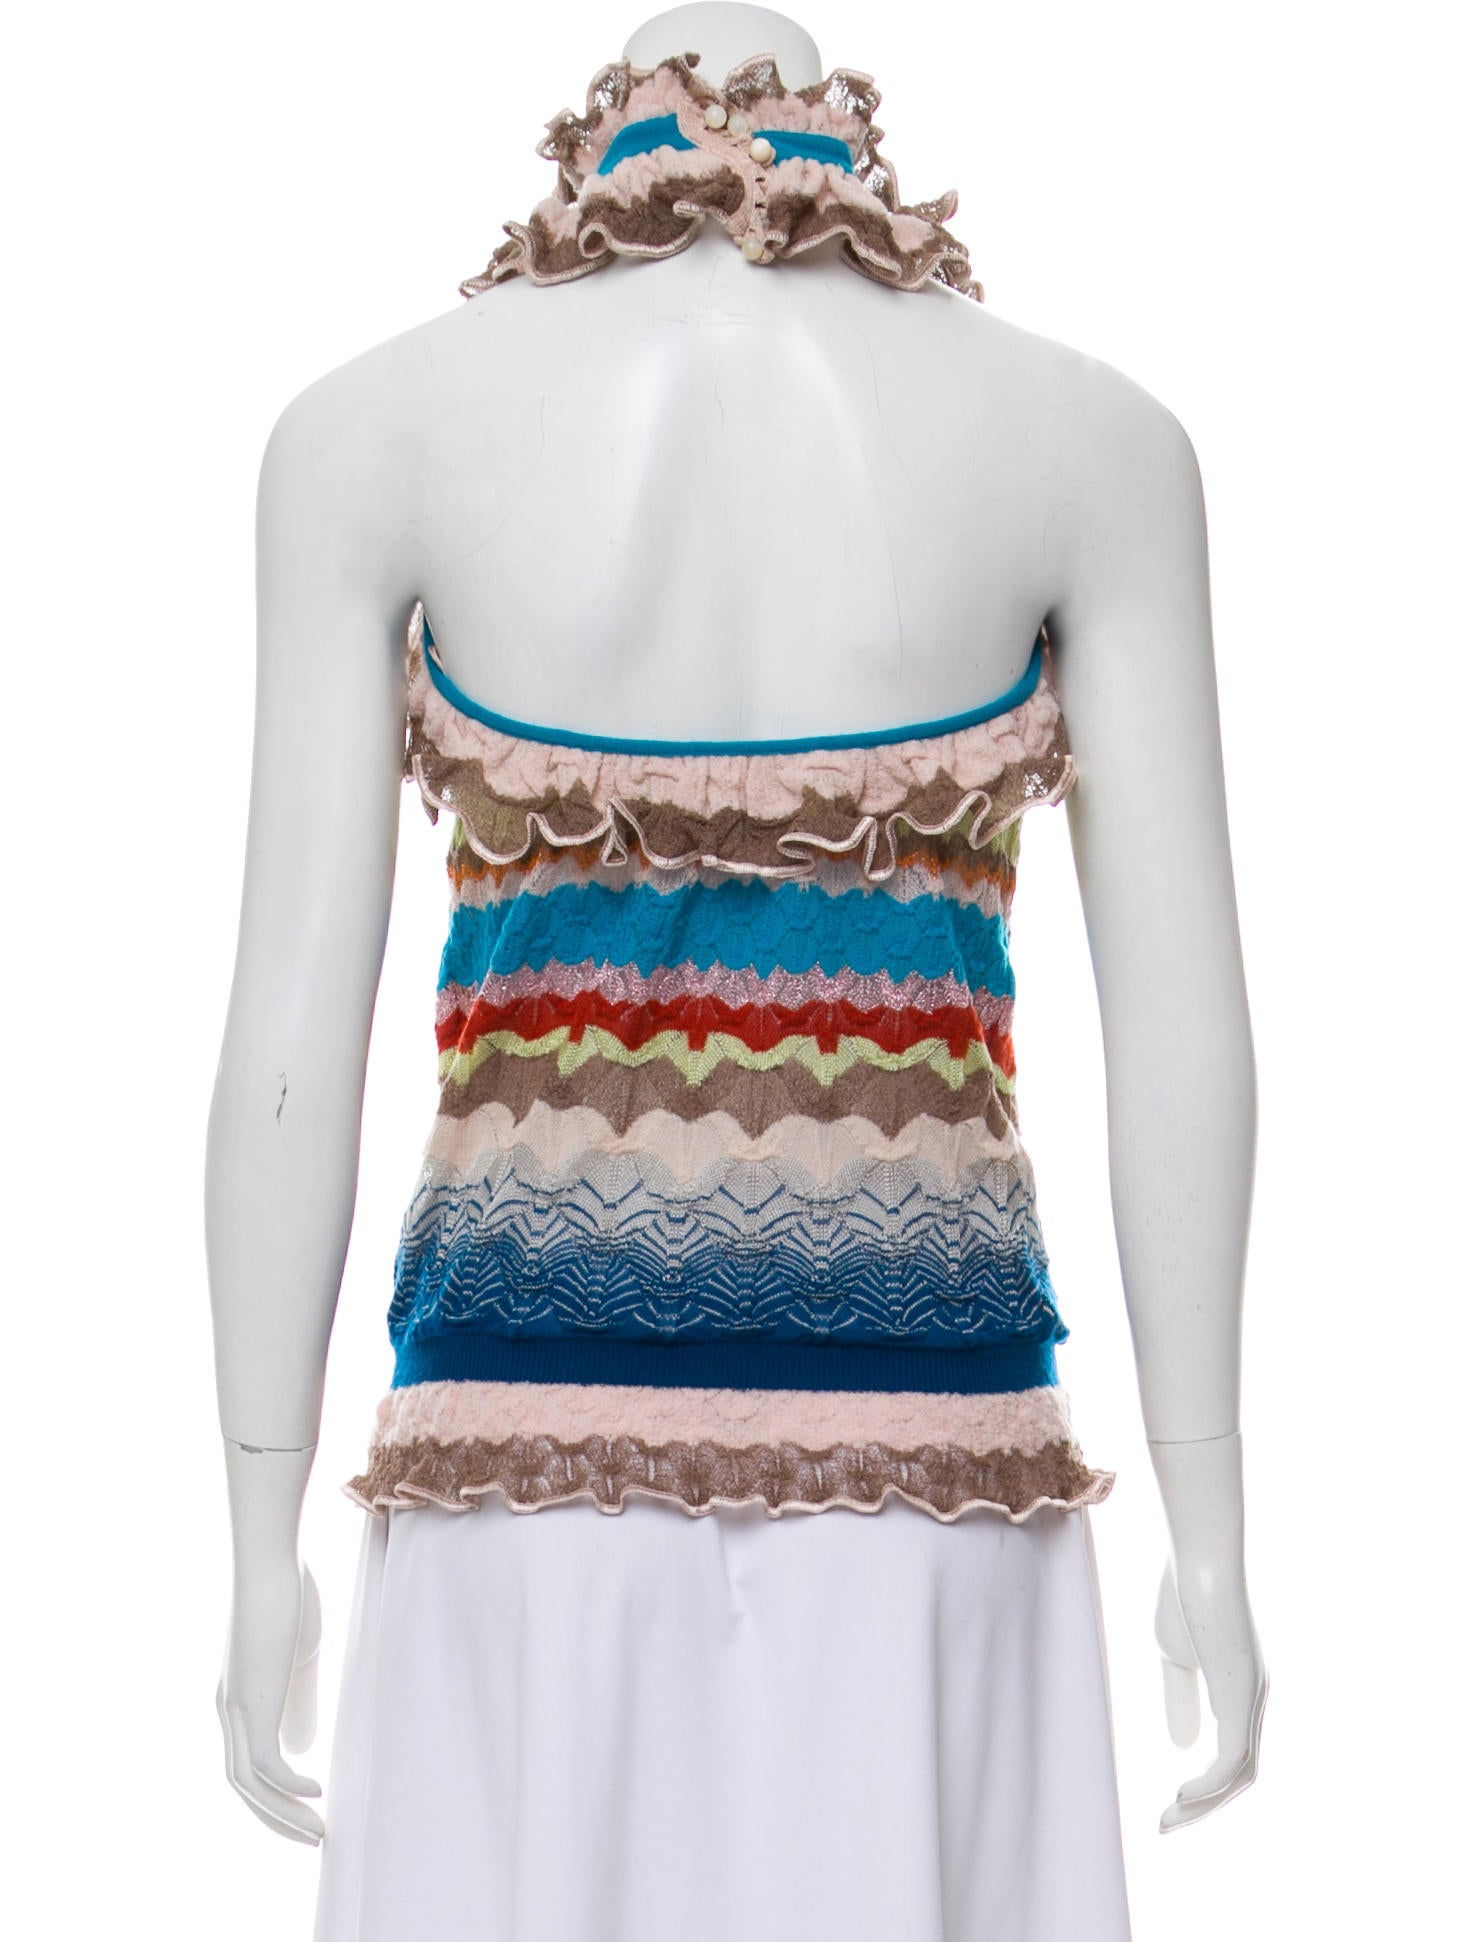 Missoni Patterned Halter Knit Top - Clothing - MIS54210 | The RealReal